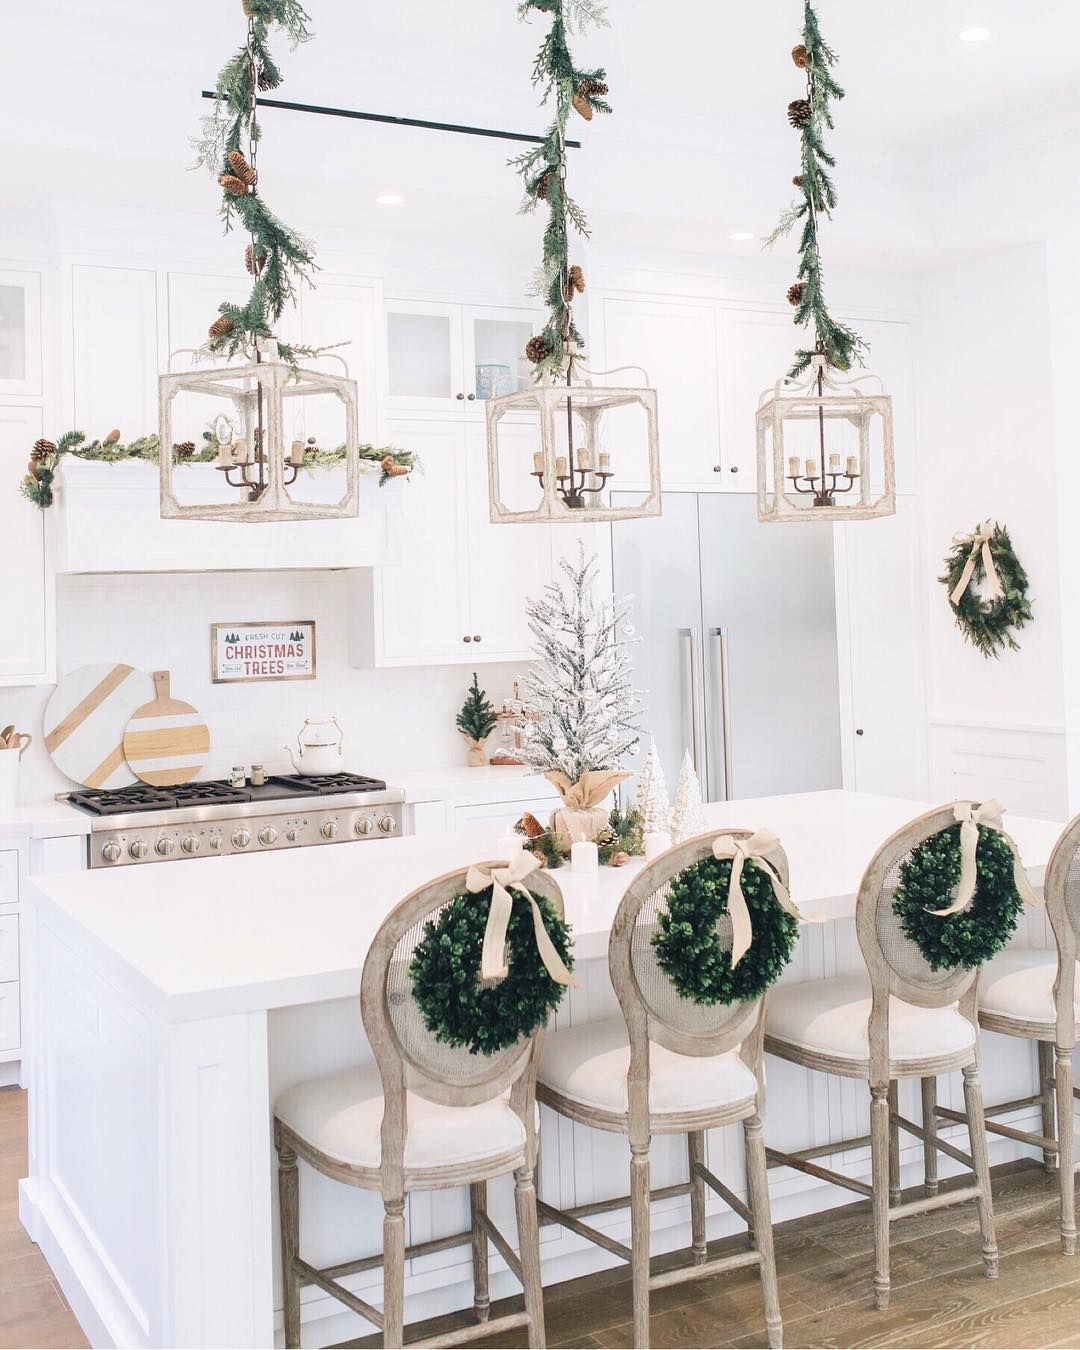 Wreaths on the back of Kitchen Bar chairs via @alifedotowsky